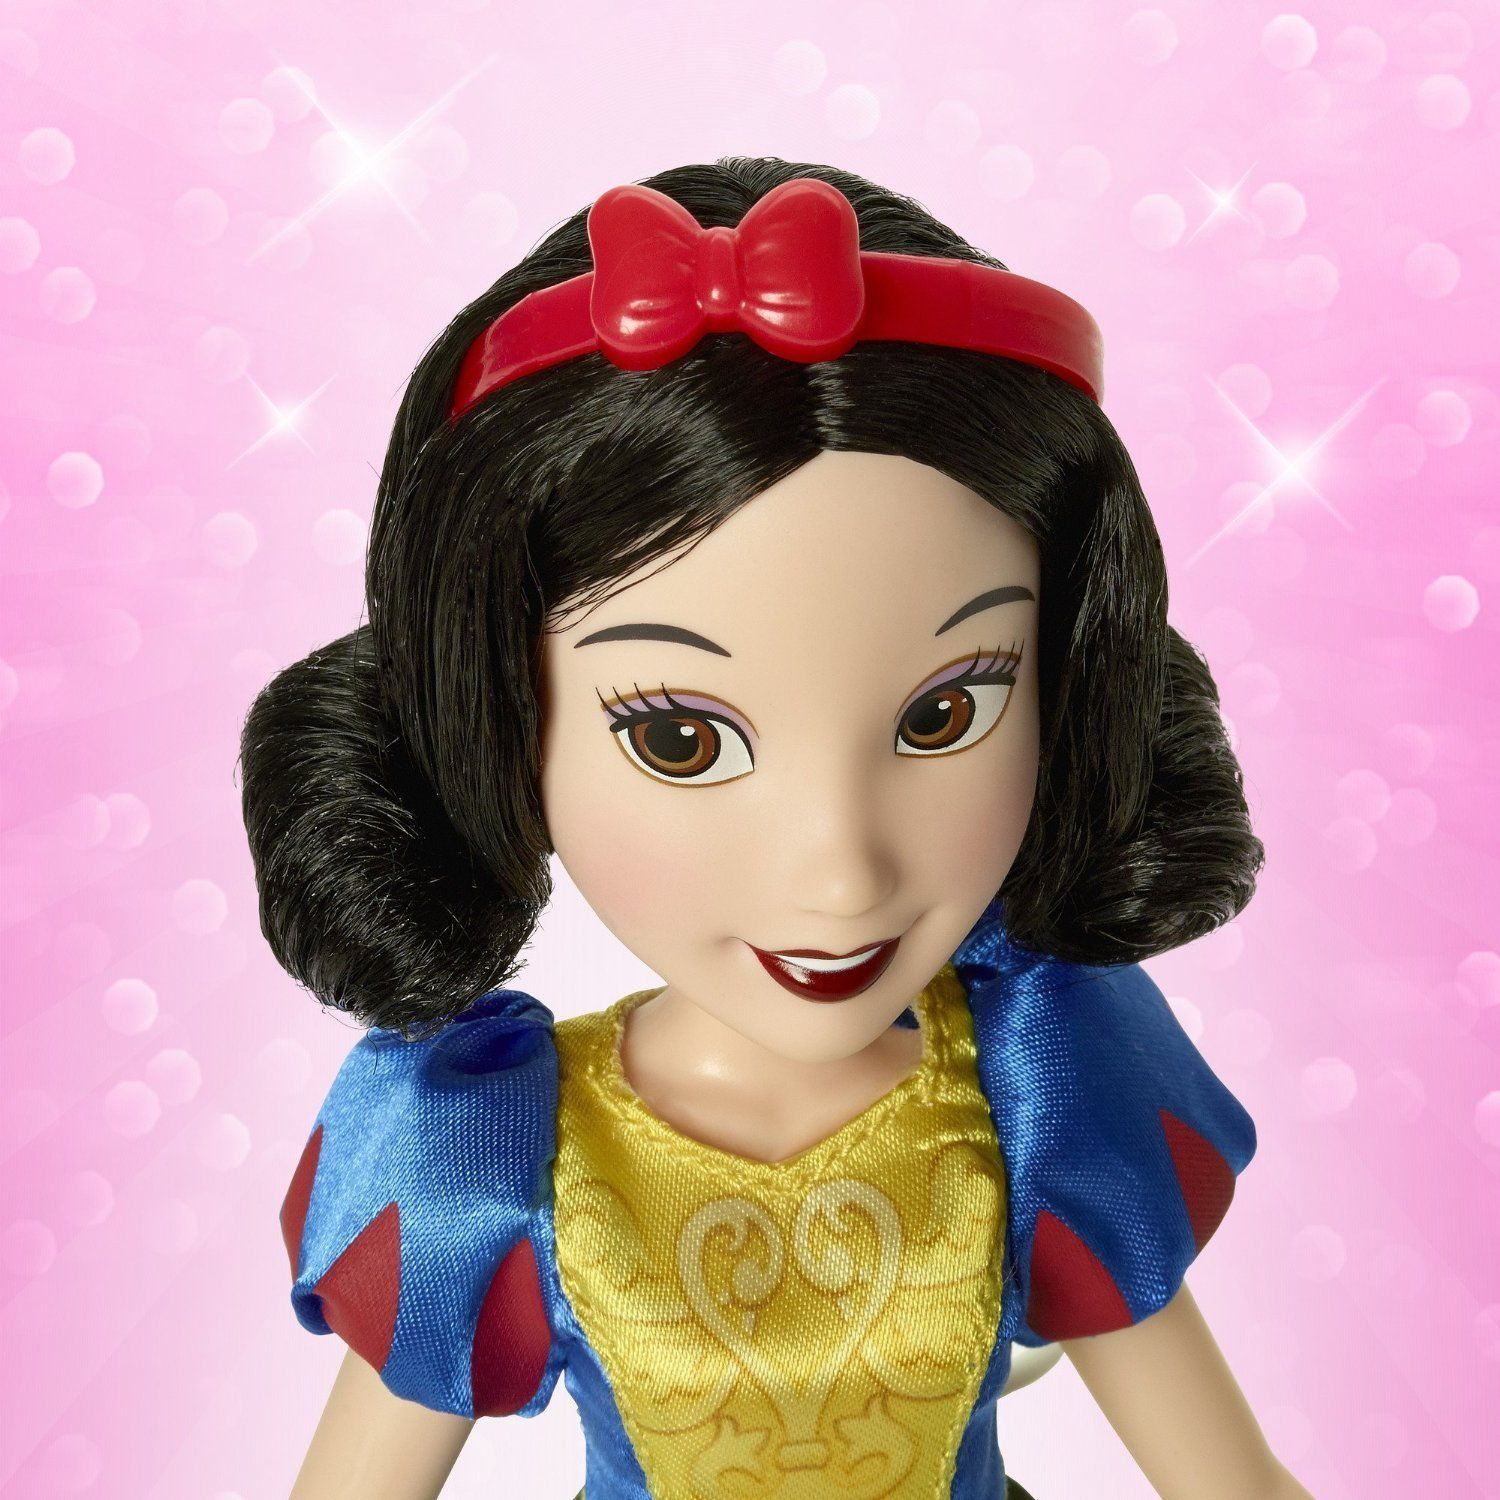 Image 3 of Disney Princess Snow White Magical Story Skirt Doll in Blue, Yellow by Hasbro